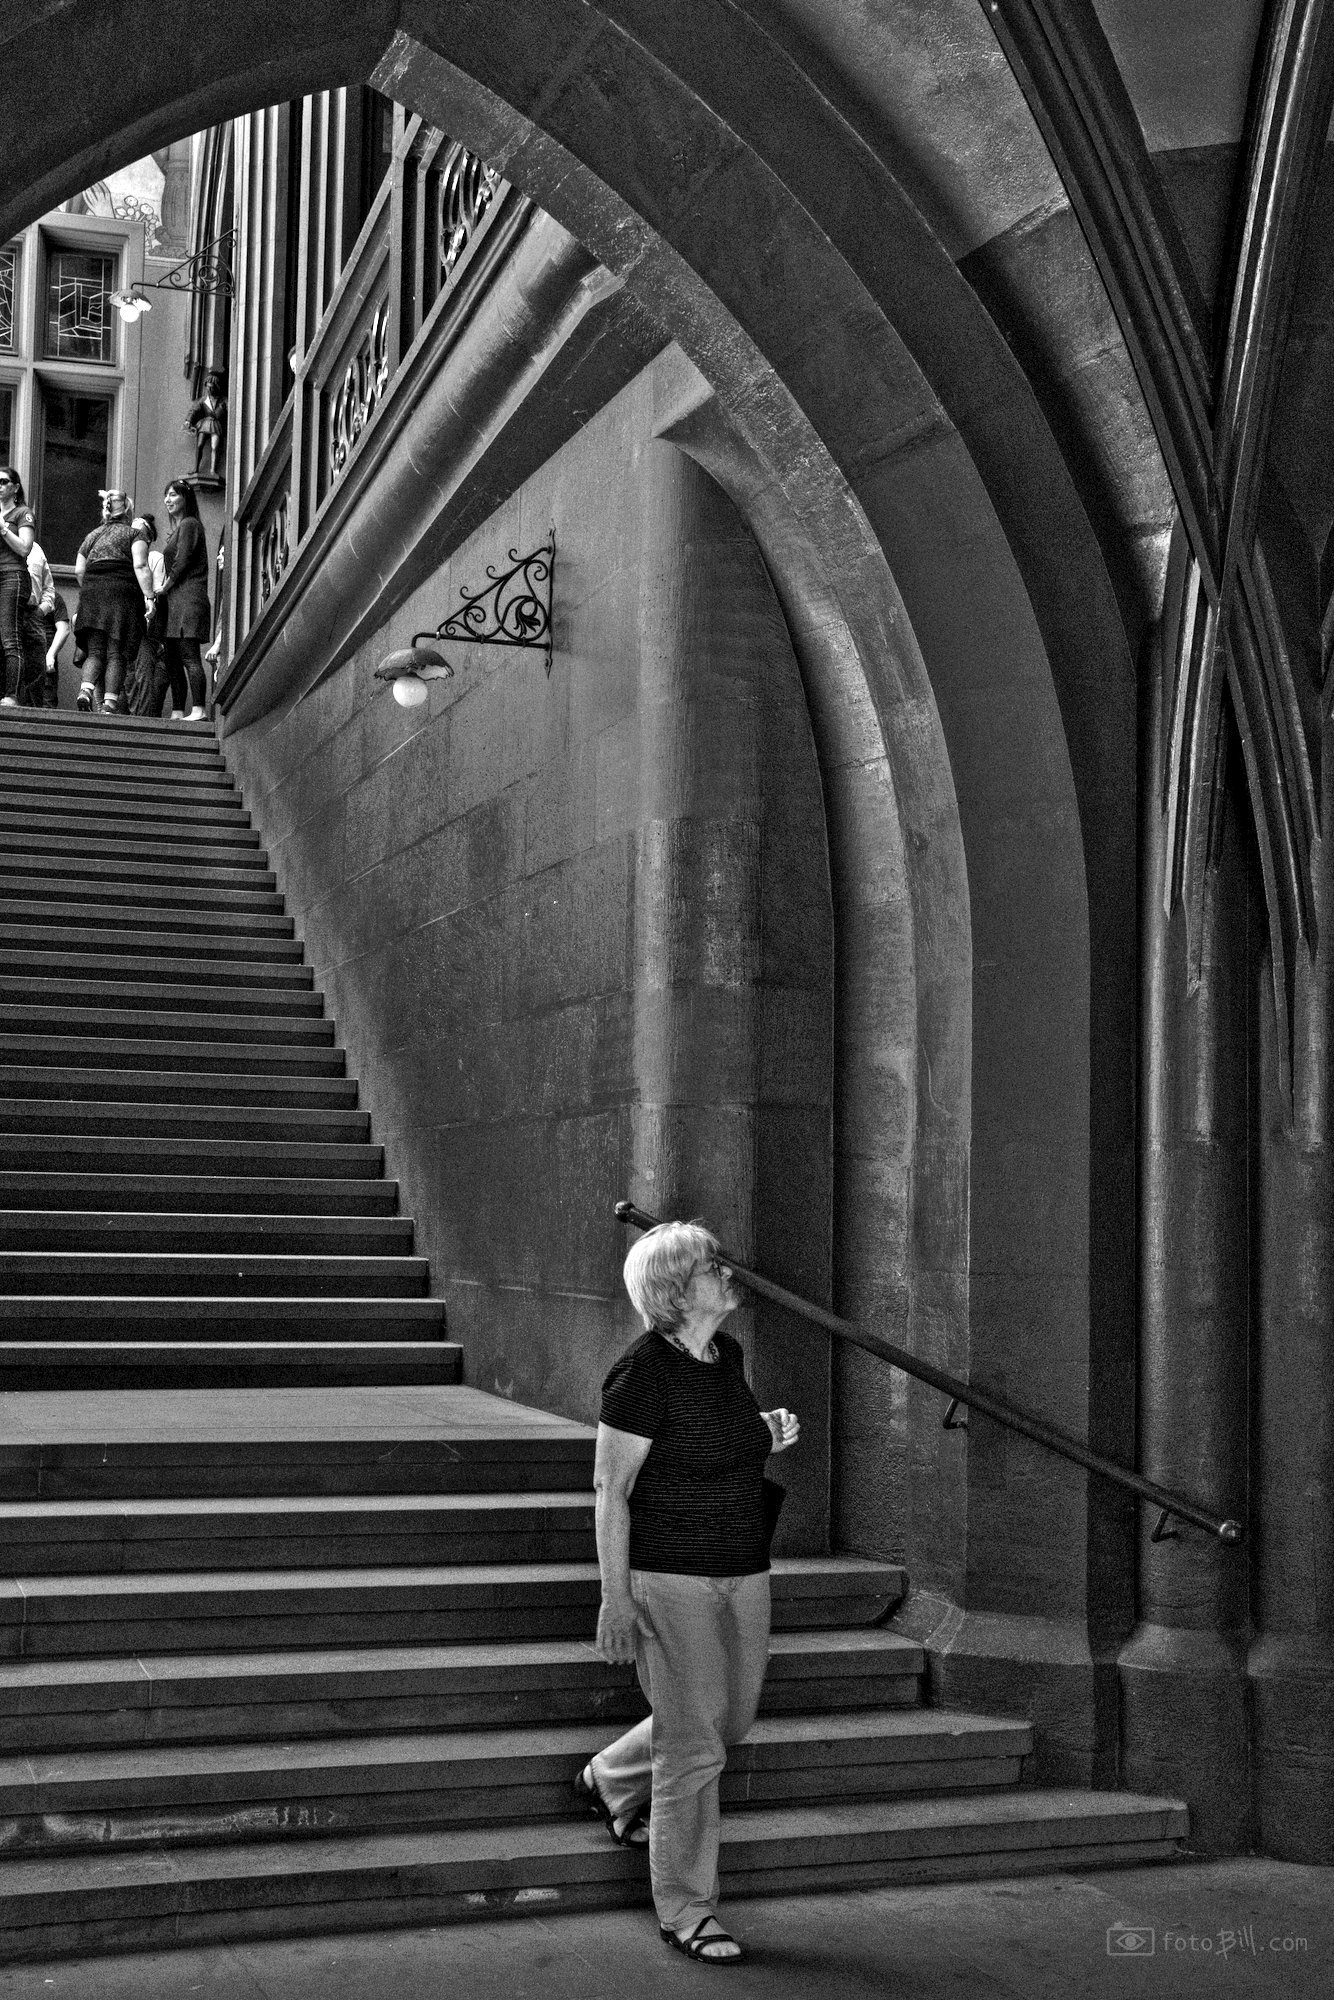 Street_Photo_Basel_0119_slctd_web_noexif.jpg